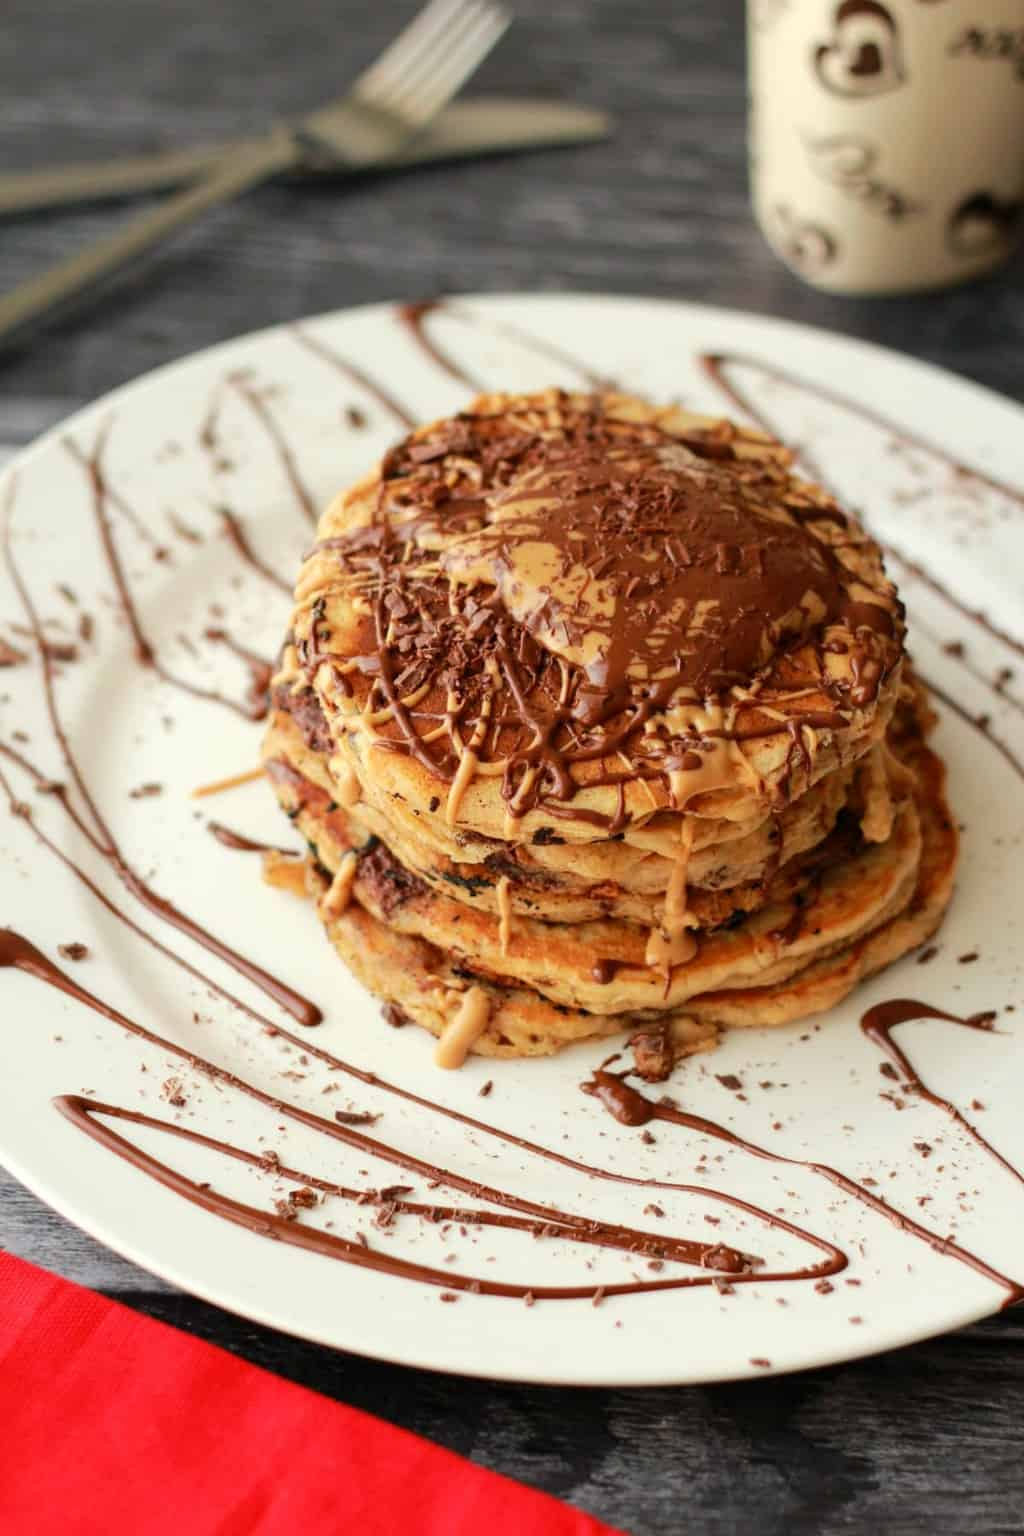 Vegan Chocolate Chip Peanut Butter Pancakes. Fabulous for breakfast, or dessert! #vegan #lovingitvegan #pancakes #dessert #breakfast